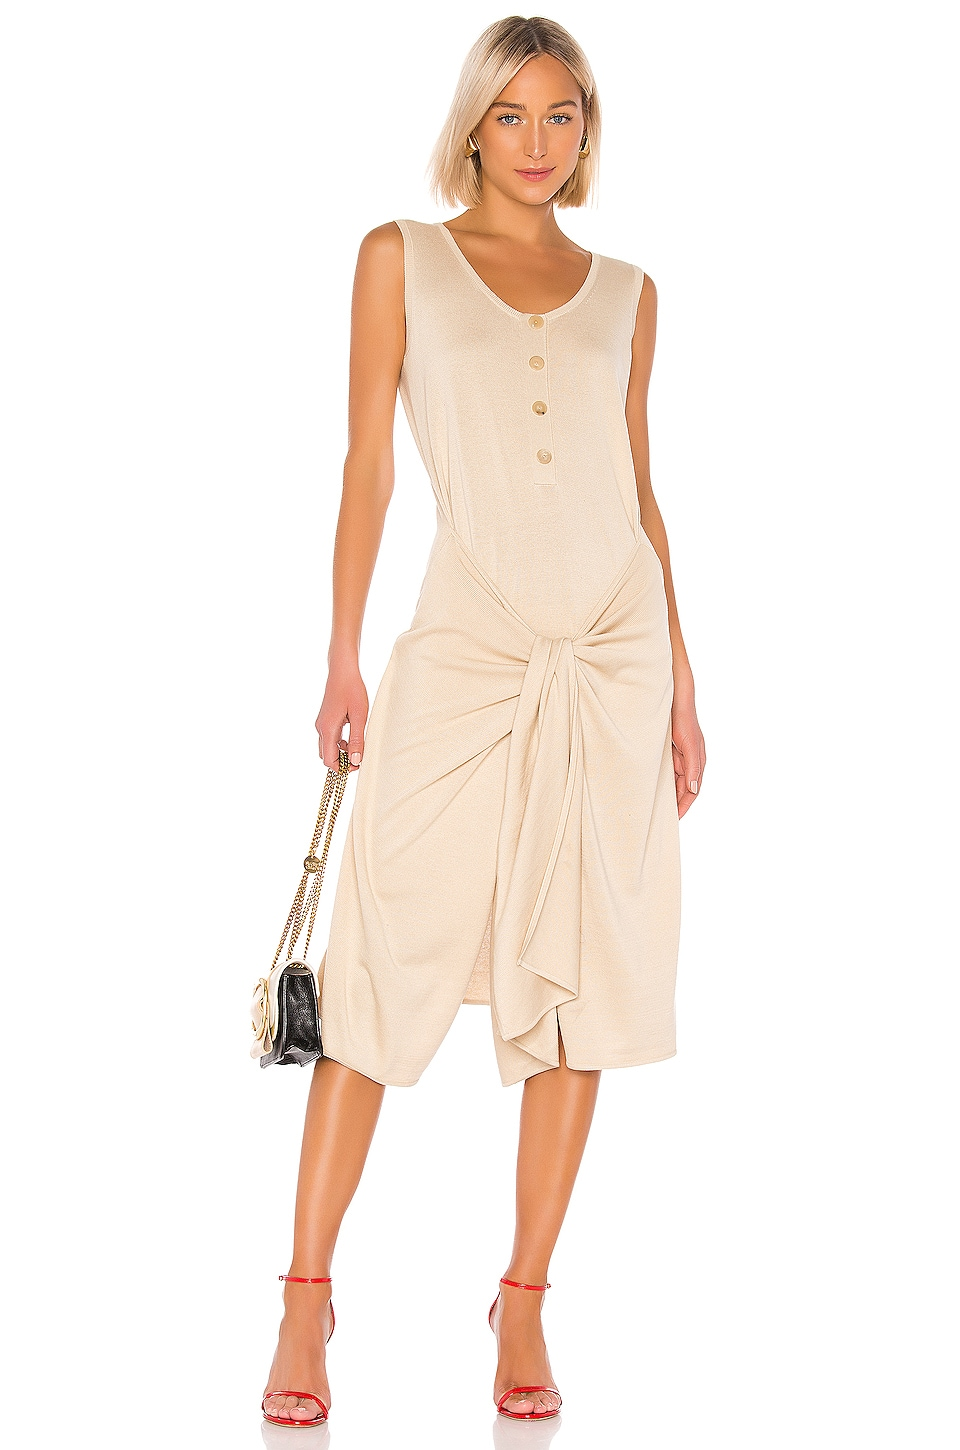 Joseph Dan Dress in Bone